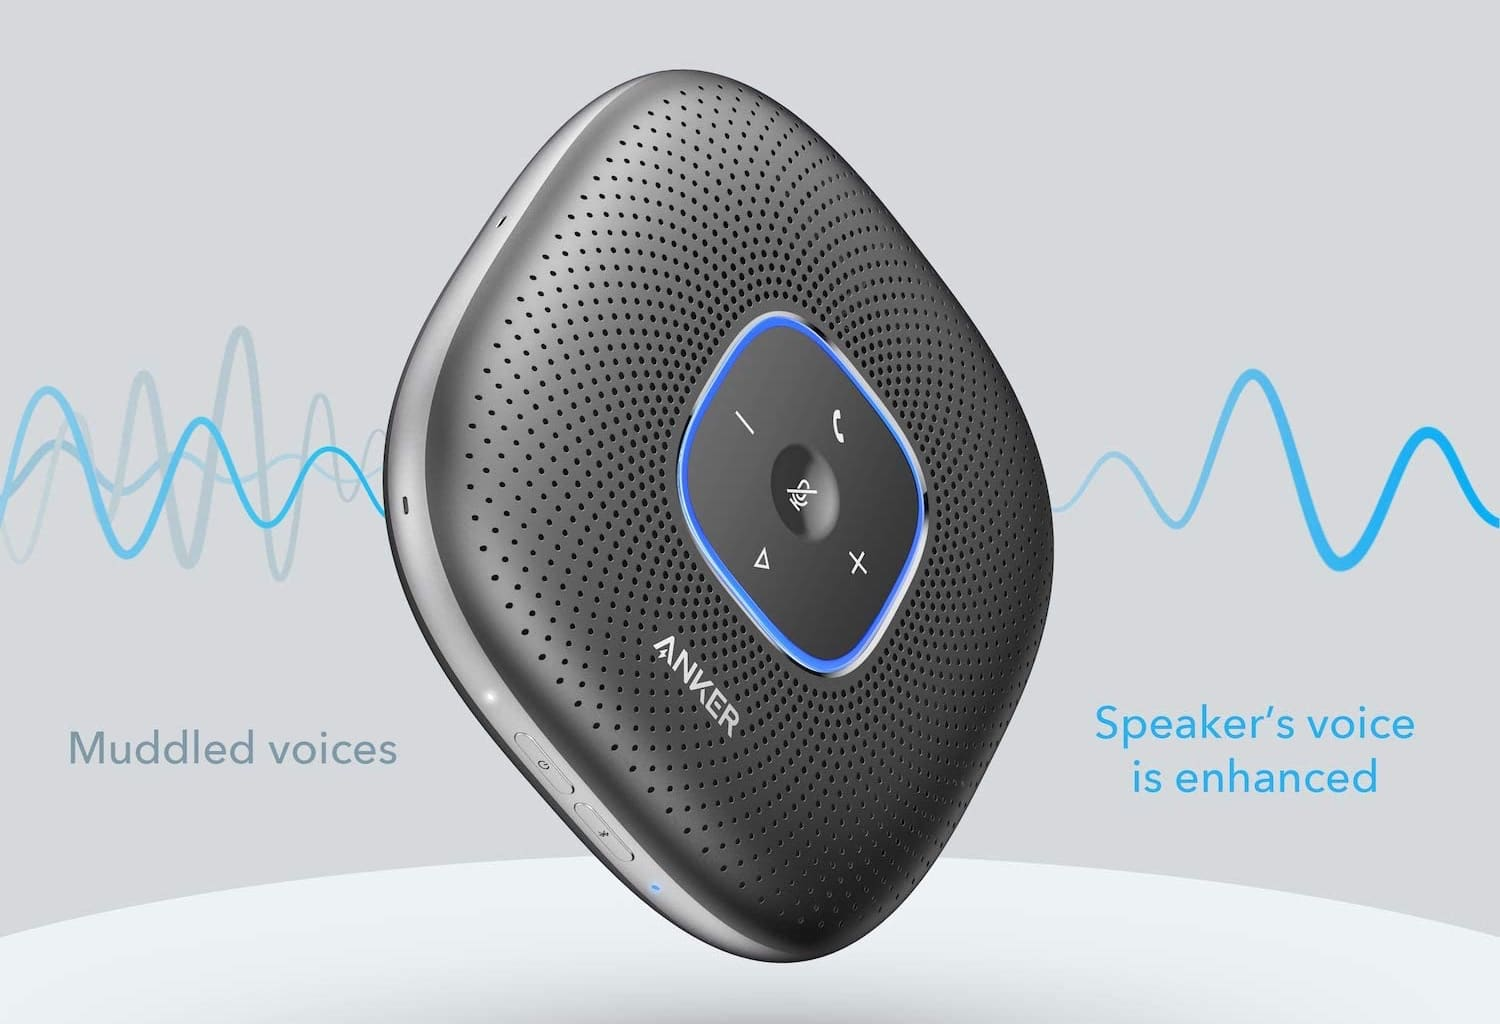 Anker PowerConf Speakerphone Upgrades Your Conference Call On Laptop or Smartphone Like Never Before!